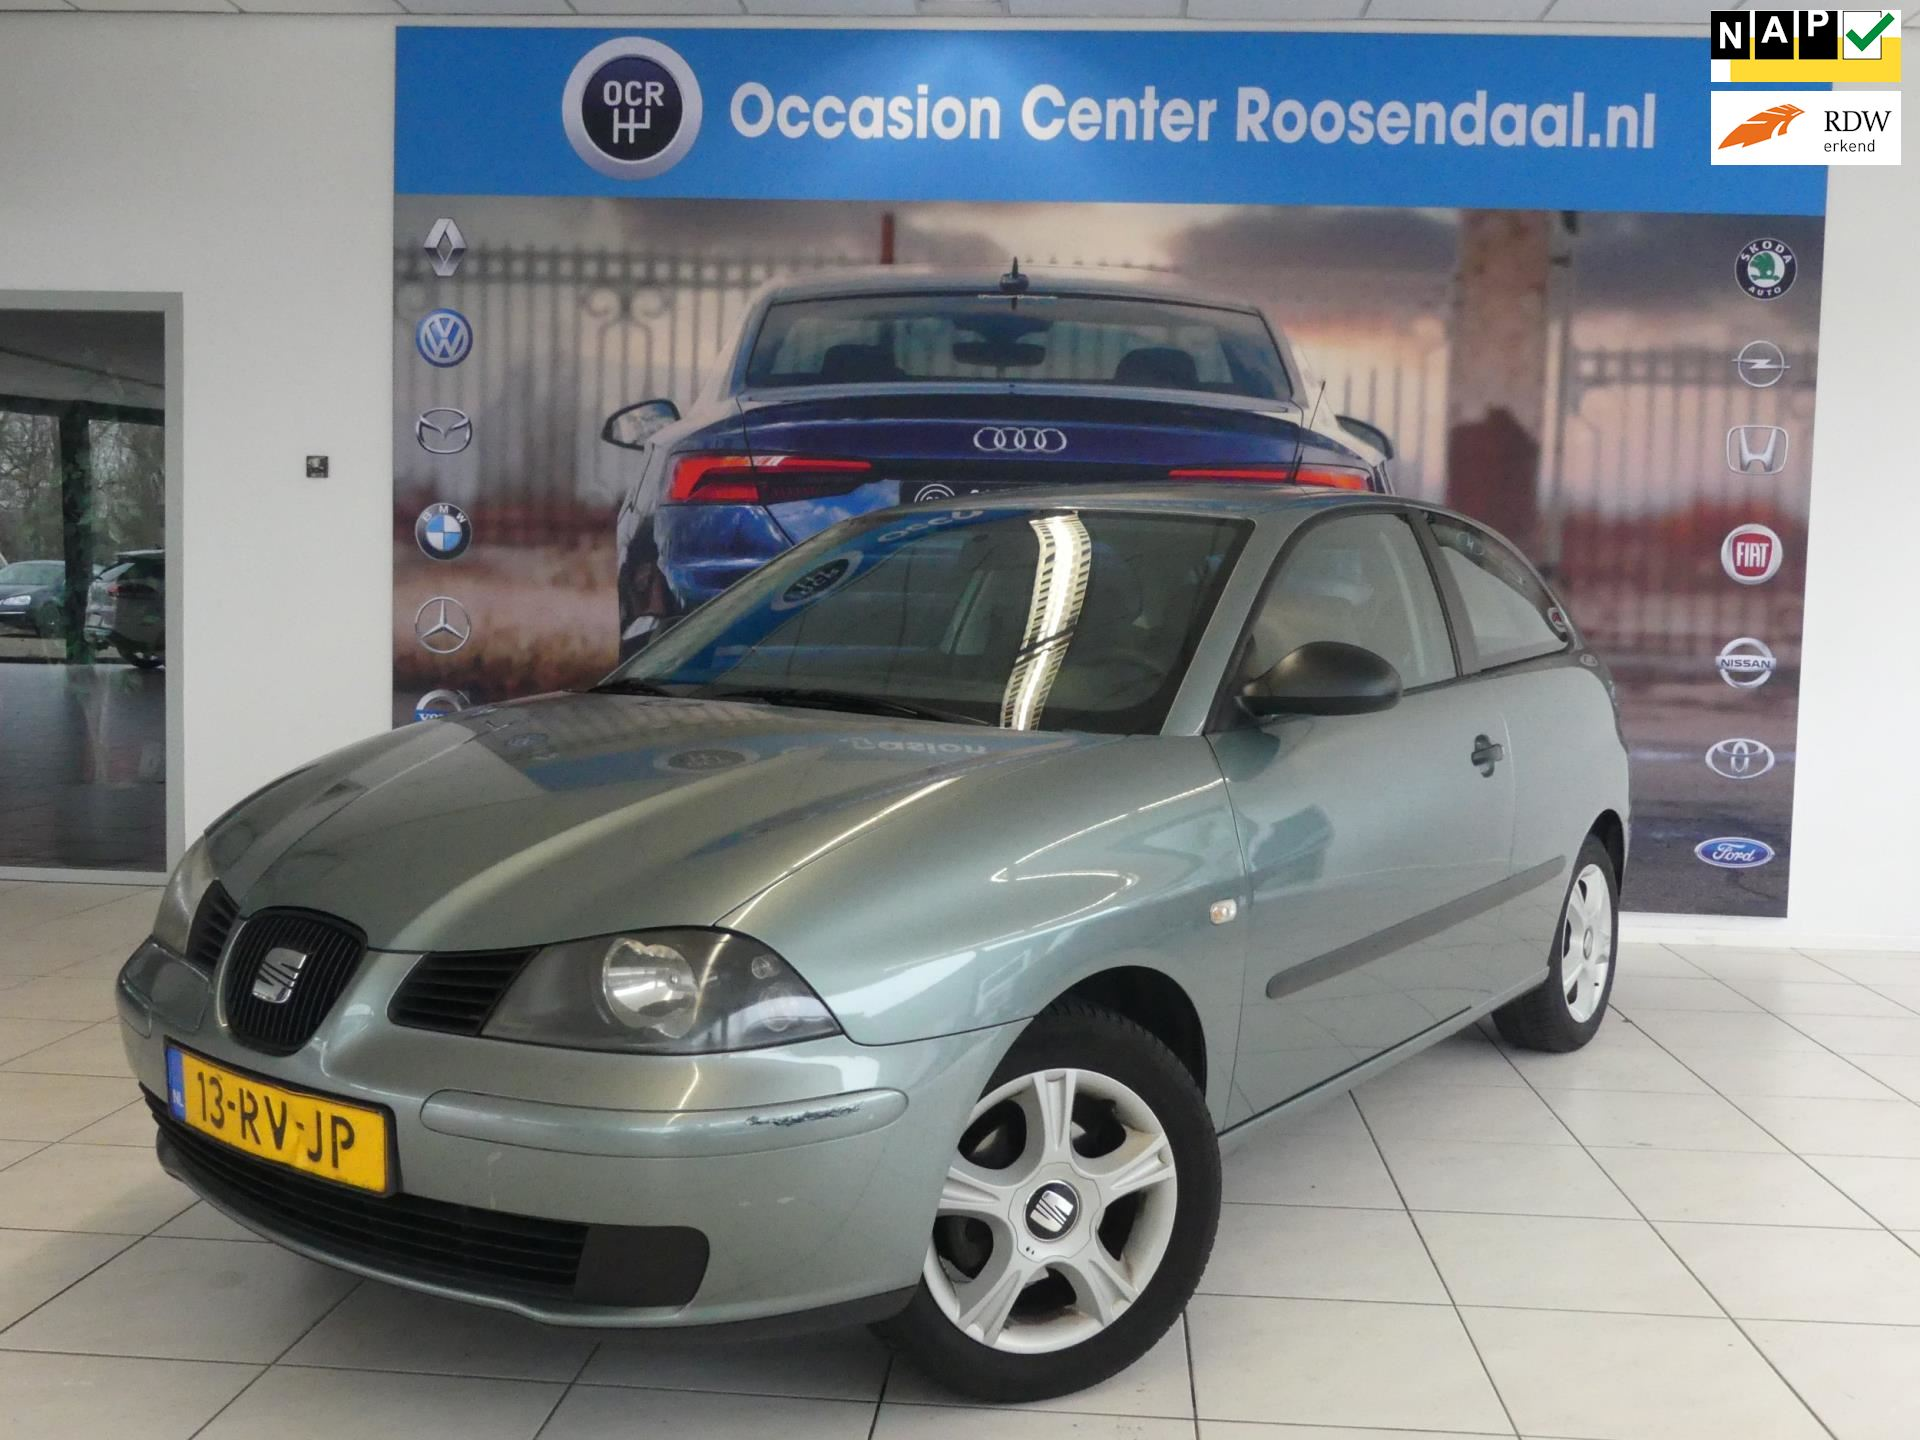 Seat Ibiza occasion - Occasion Center Roosendaal